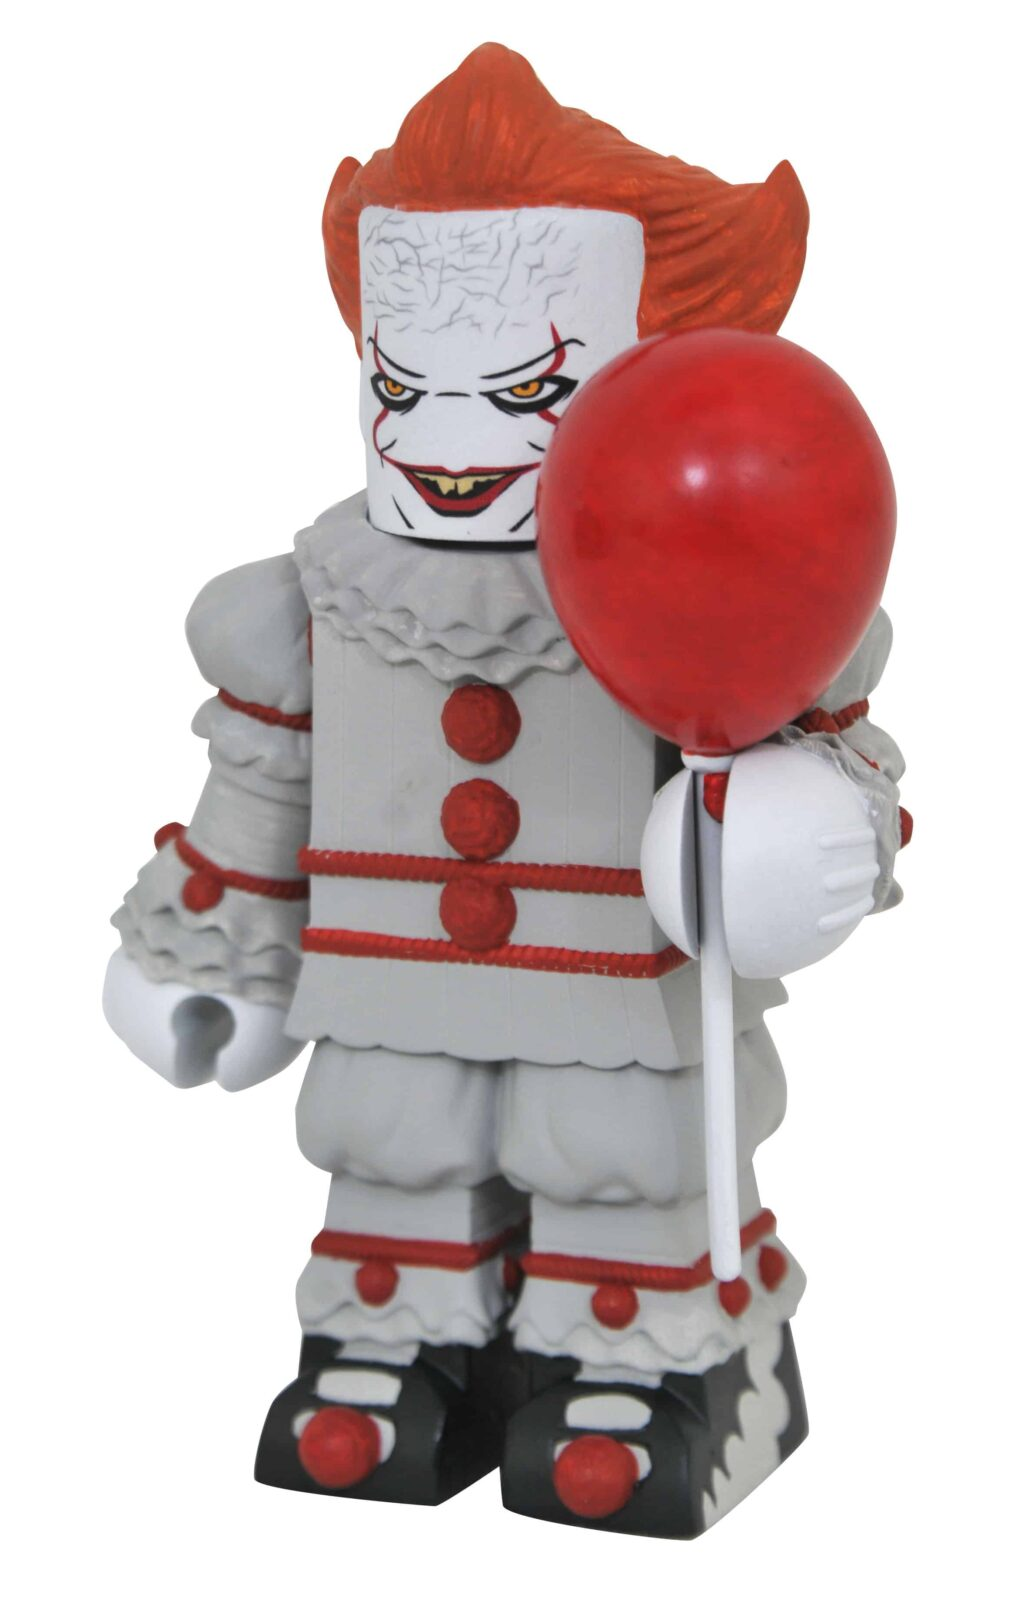 Diamond Select Toys Pennywise Comes With His Own Red